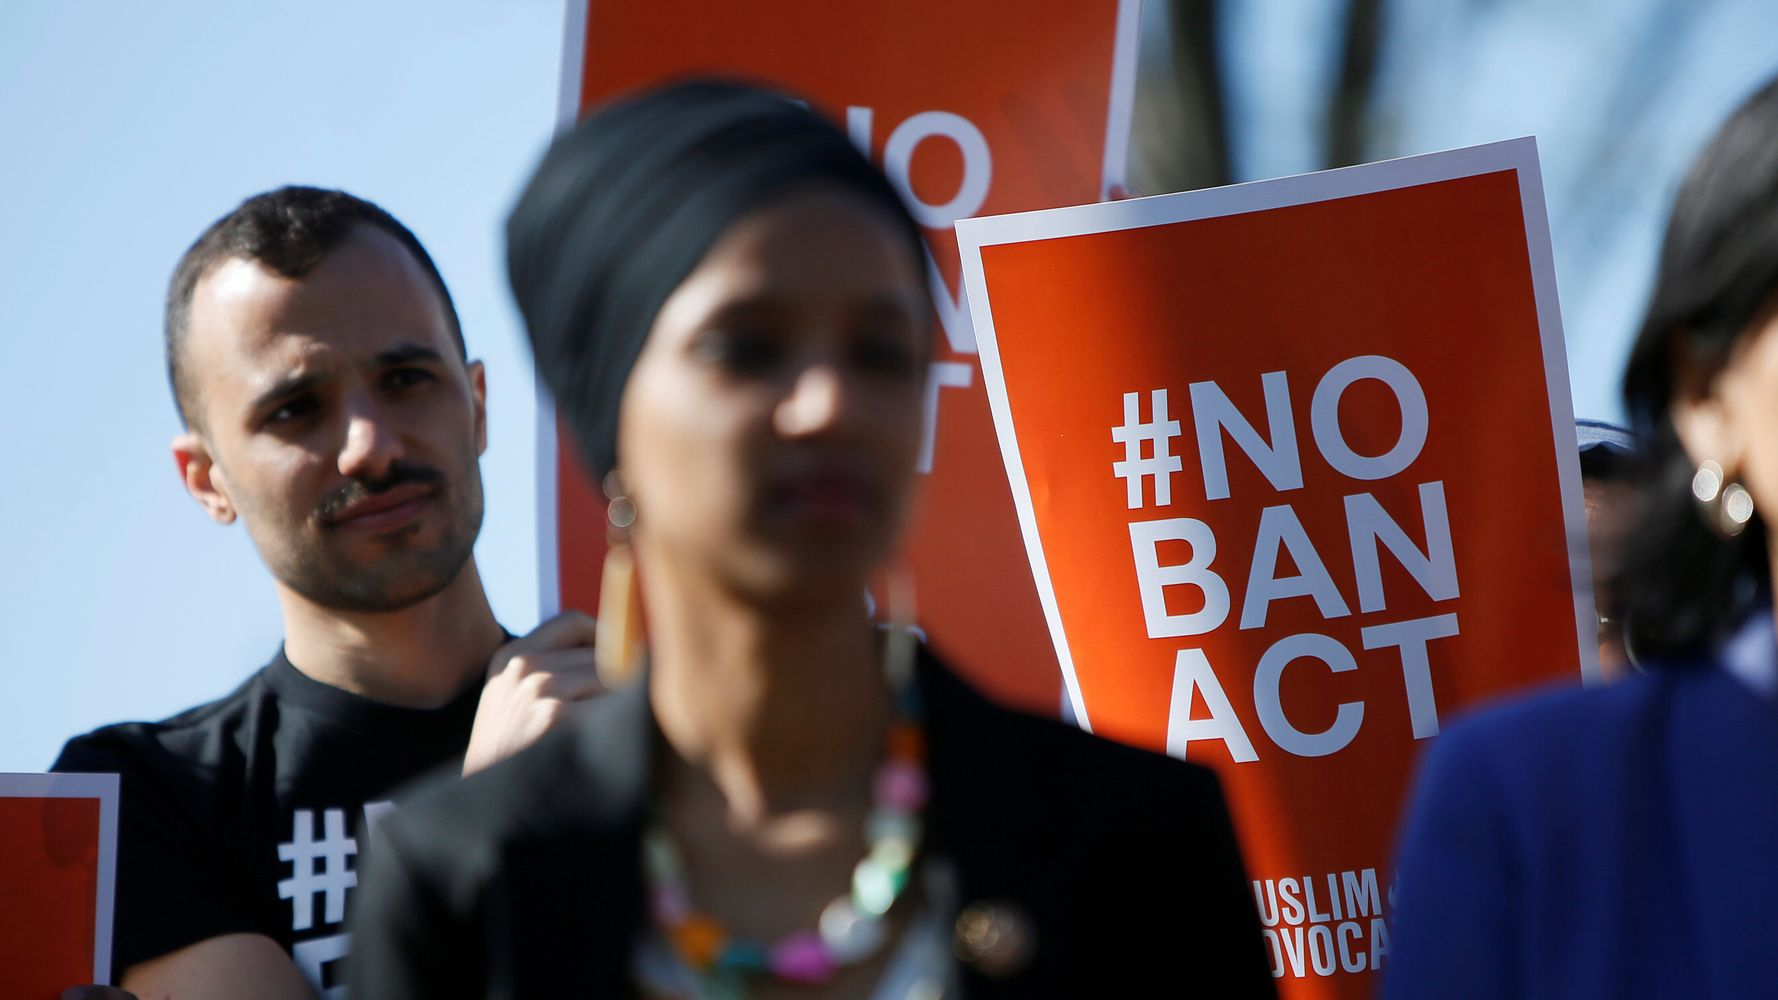 Westlake Legal Group 5d892d122300009705d678f5 NOW UP: Nearly 3 Years Later, Congress Finally Holds First Muslim Ban Hearing